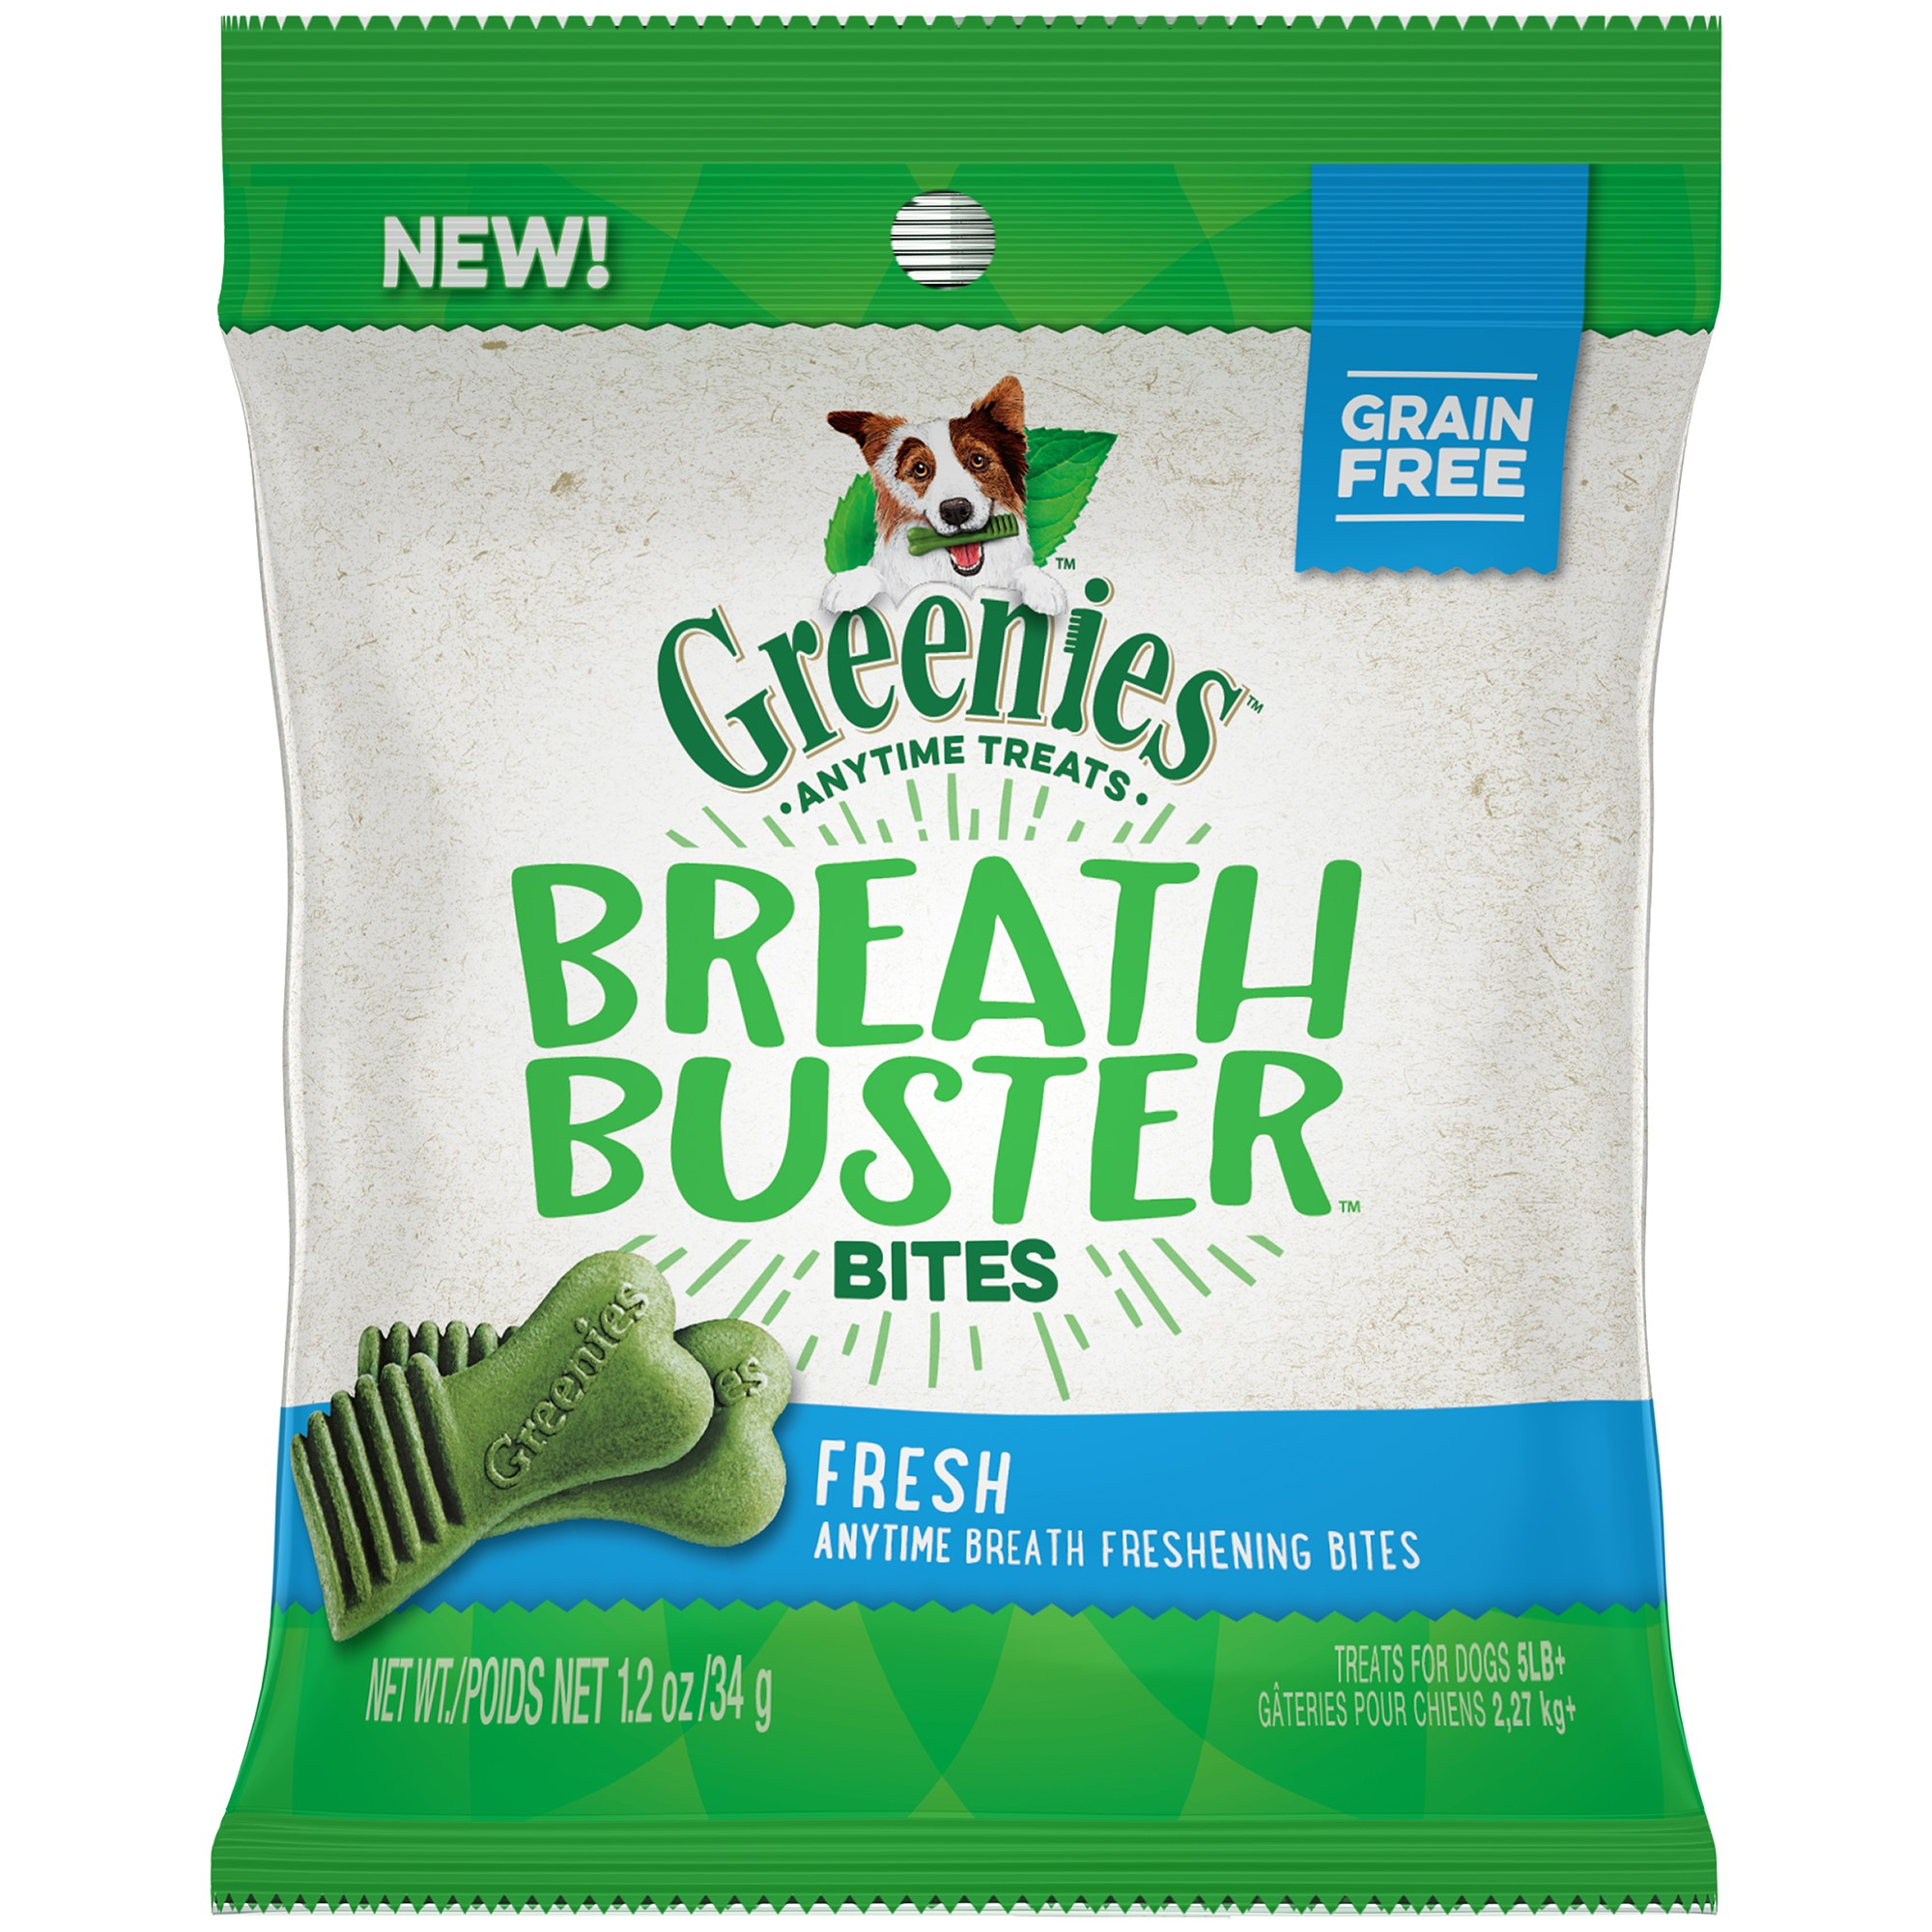 Greenies Breath Buster Bites Fresh Flavor Treats for Dogs 1.2 Ounces